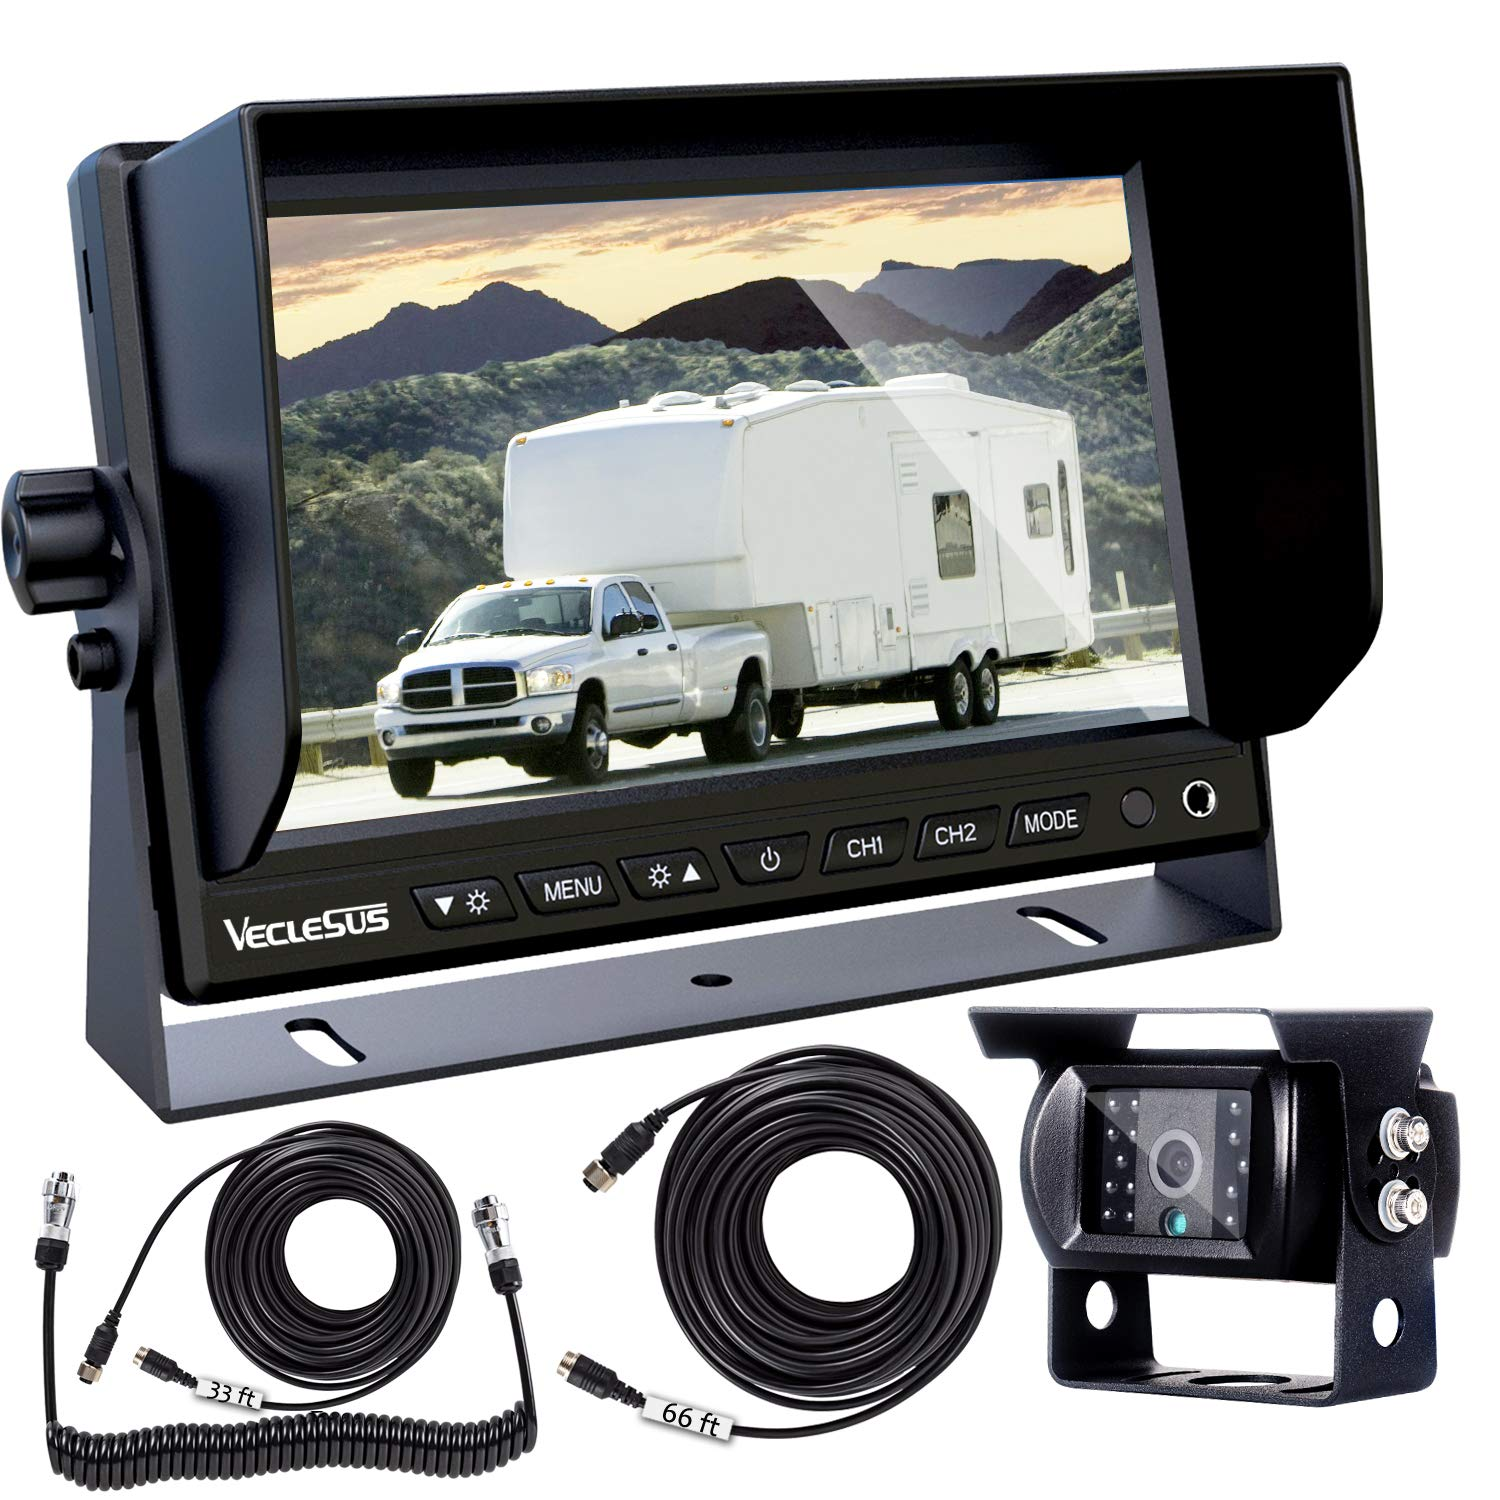 VECLESUS Backup Camera Kit for Semi-Trailer Truck, 7'' Wide Monitor with Infrared Night Vision IP68 Waterproof Backup Camera for Truck Trailers, Motorhome, Semi-Trailer, Semi Truck, Tractor by VECLESUS